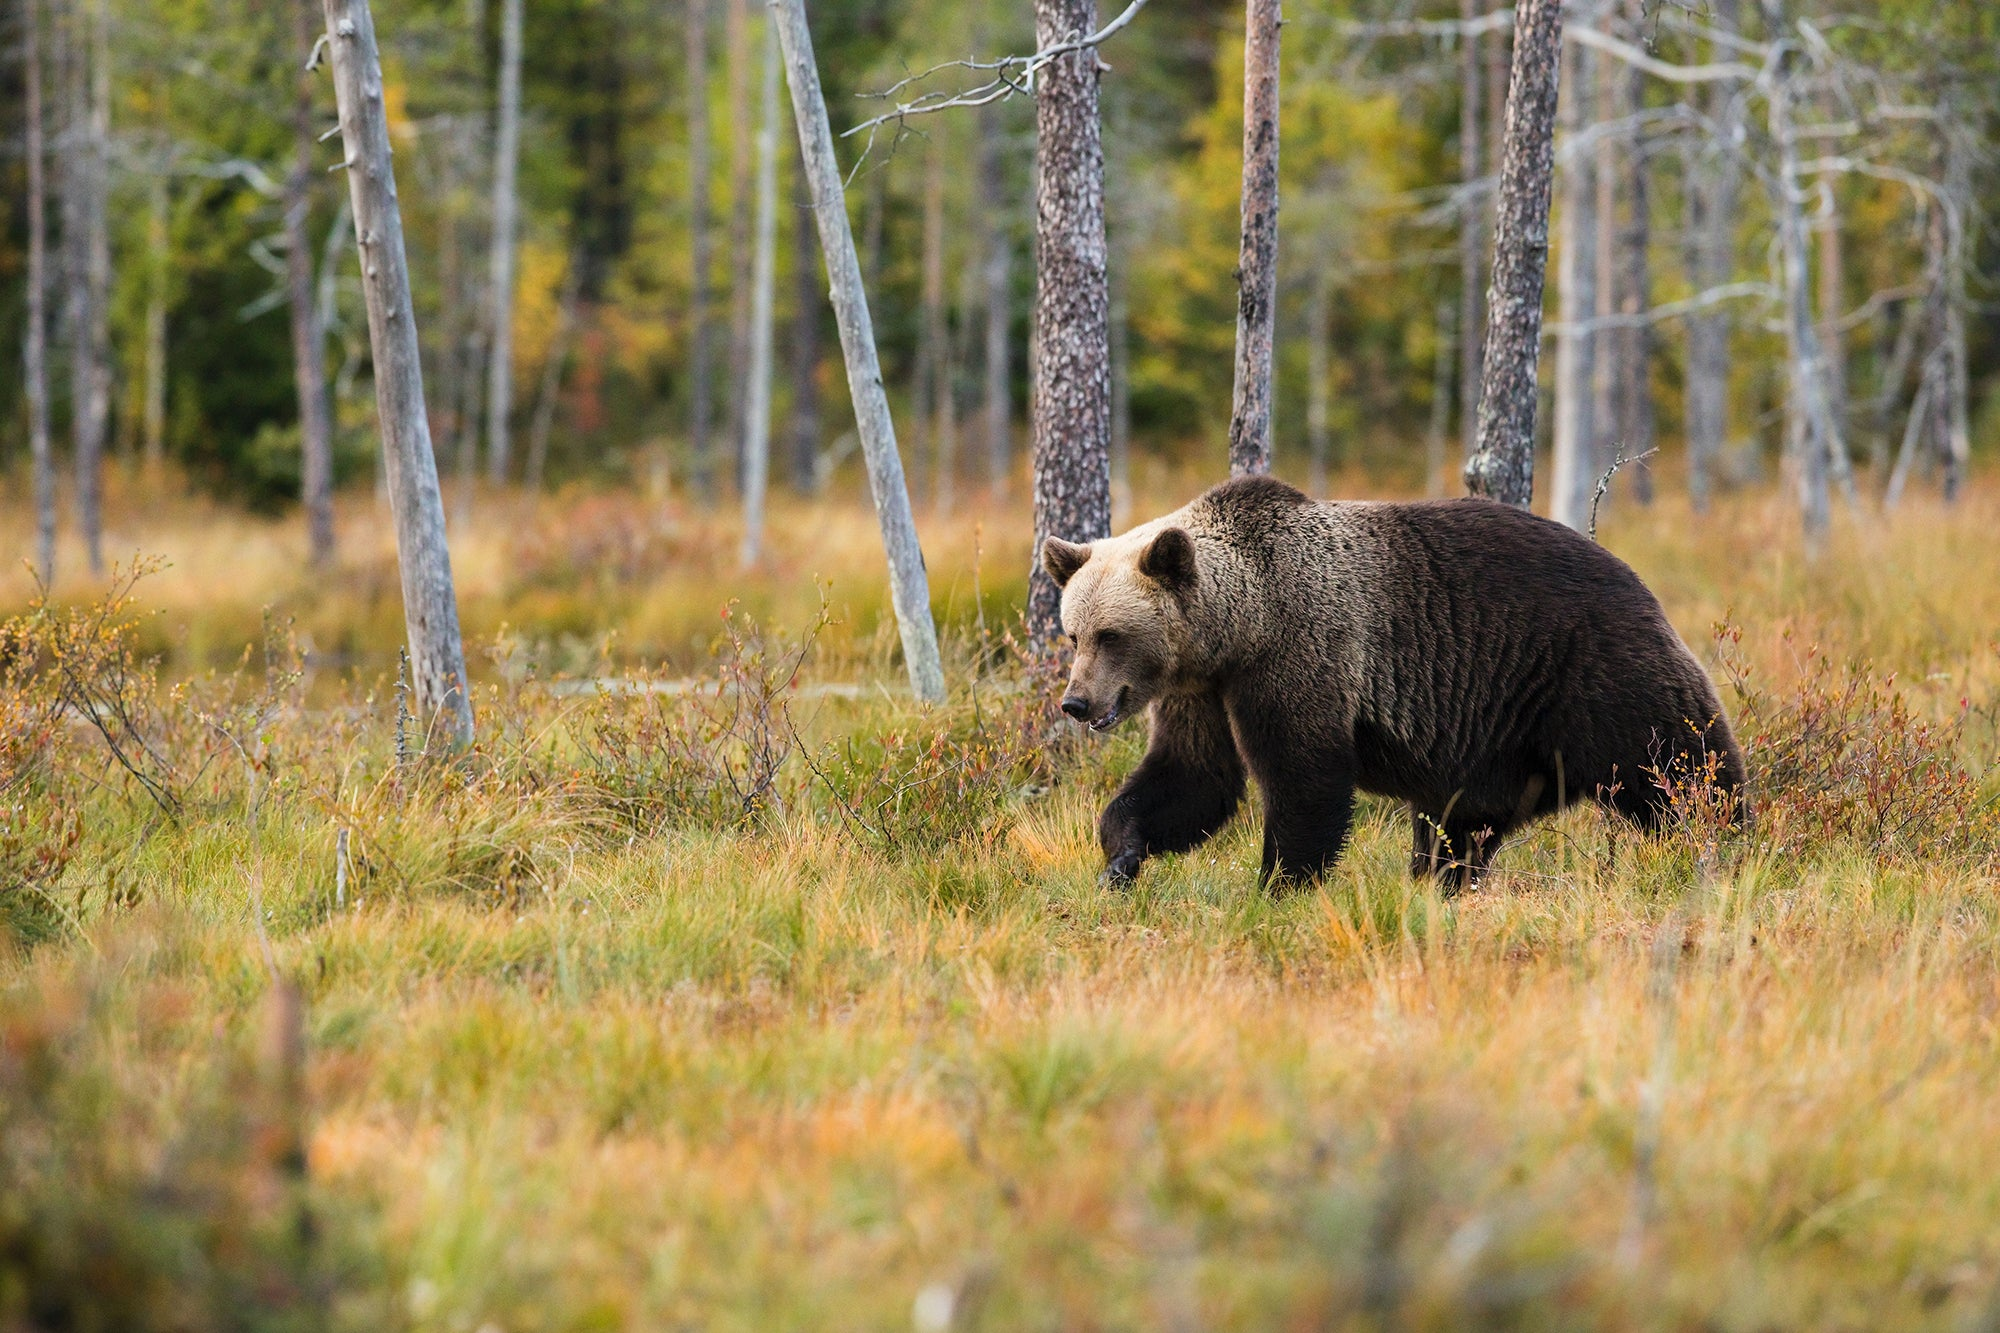 A bear encounter in the woods won't be so scary when you have the best bear spray.